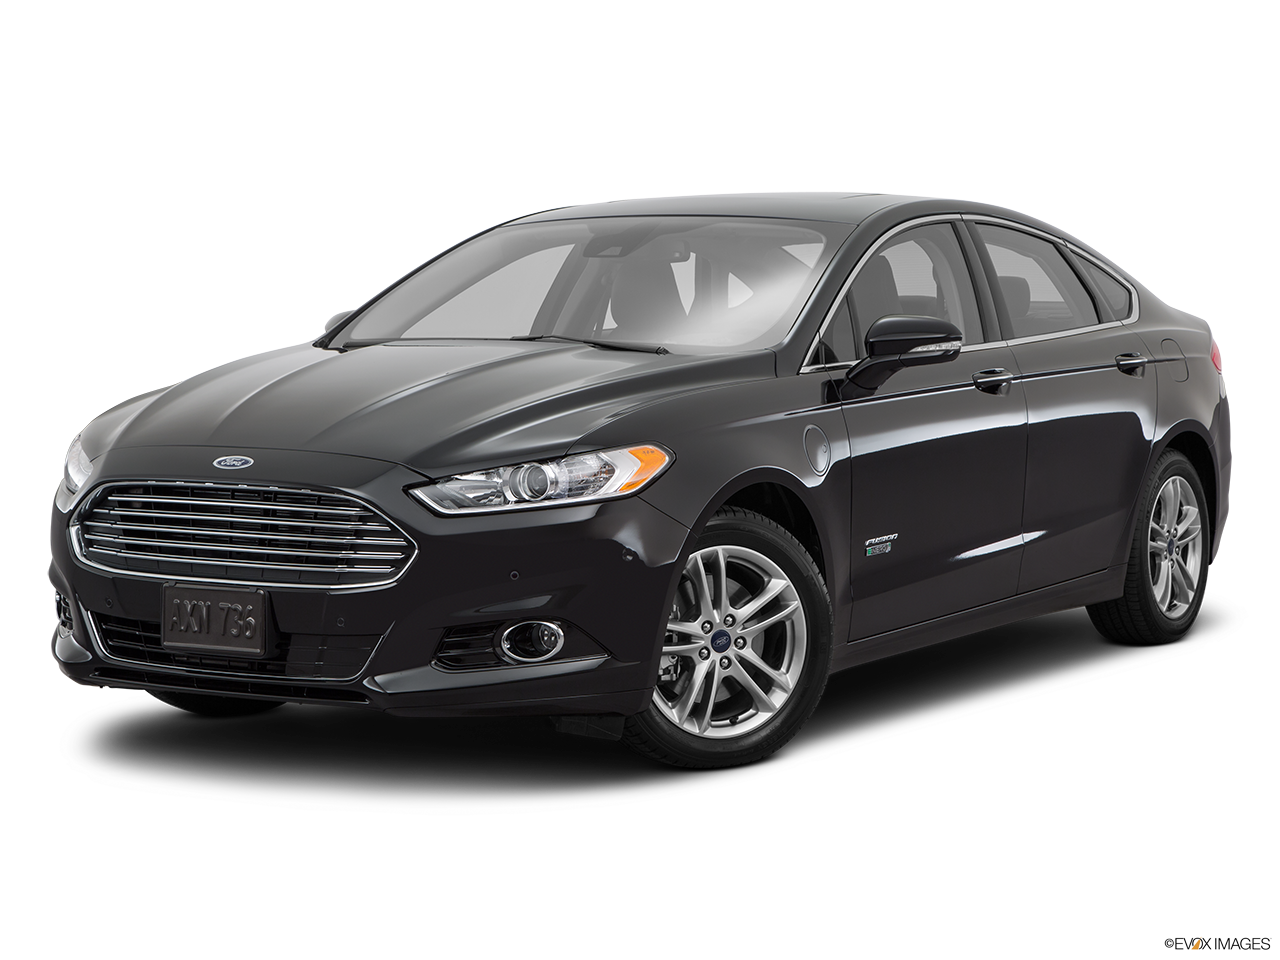 2016 Ford Fusion Near Van Nuys.